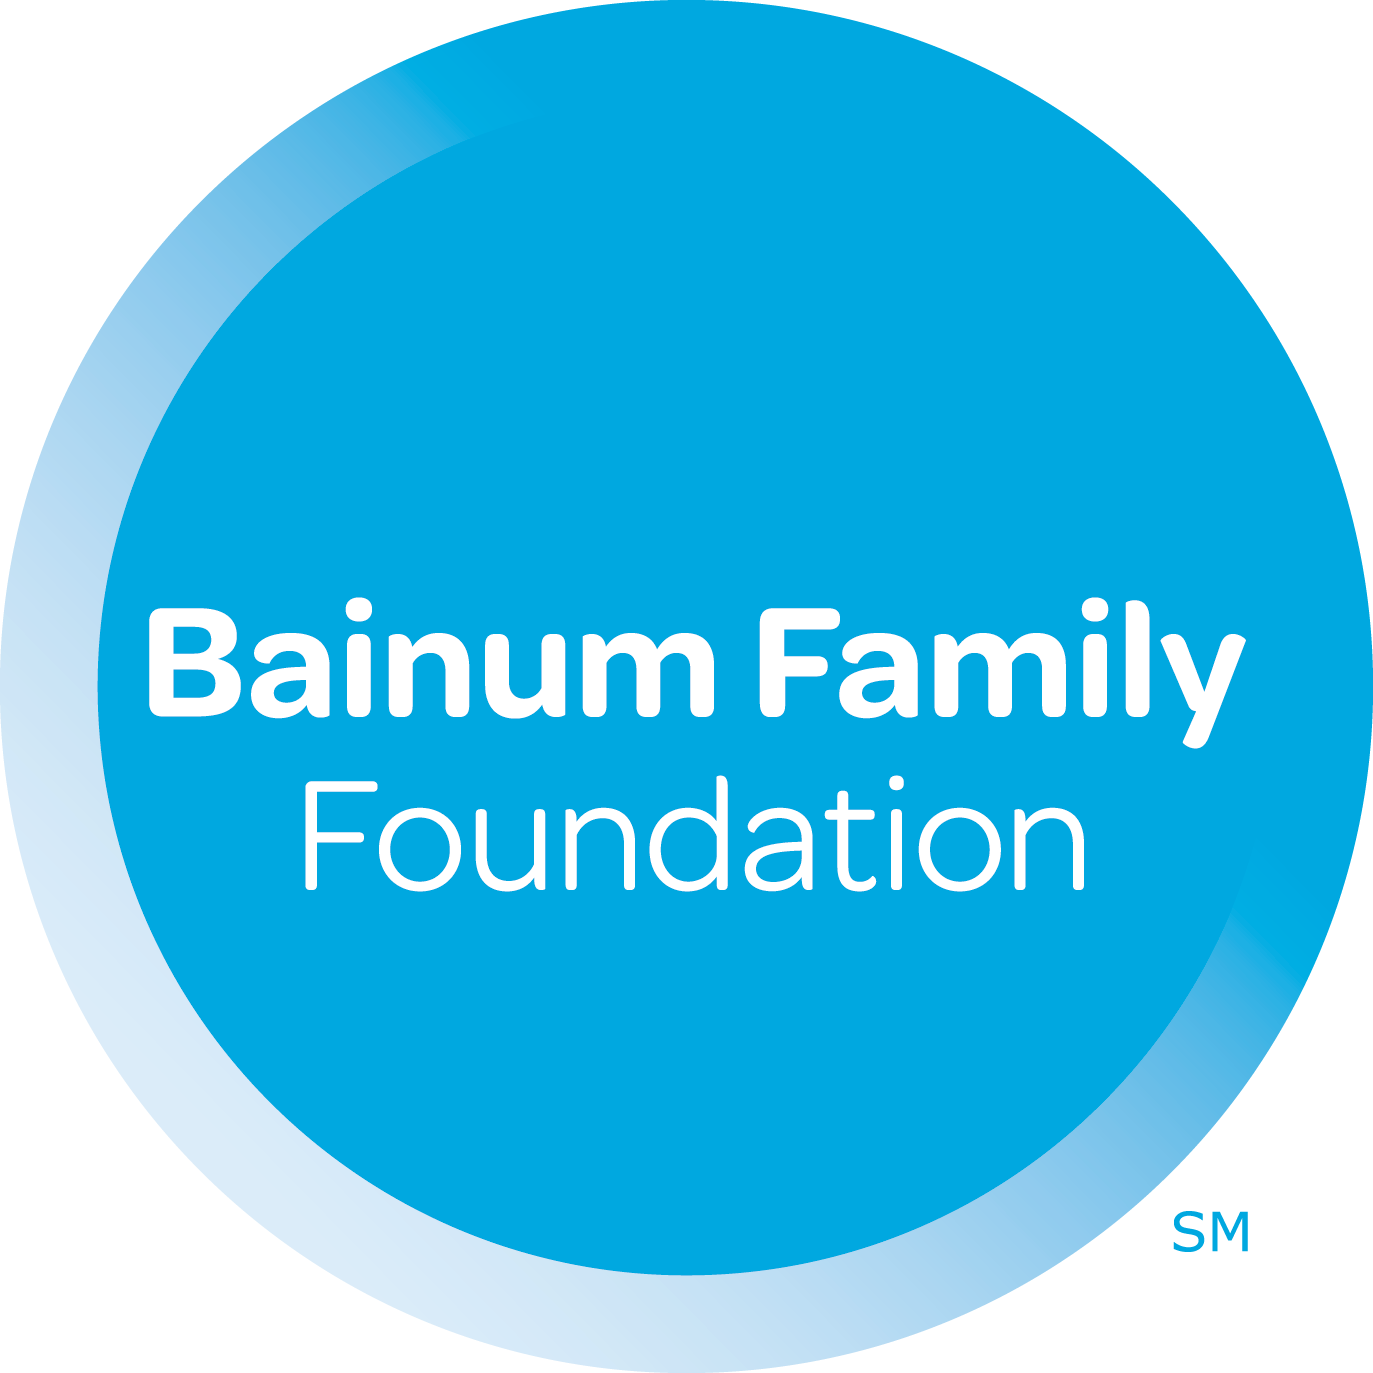 Bainum Family Foundation's Logo